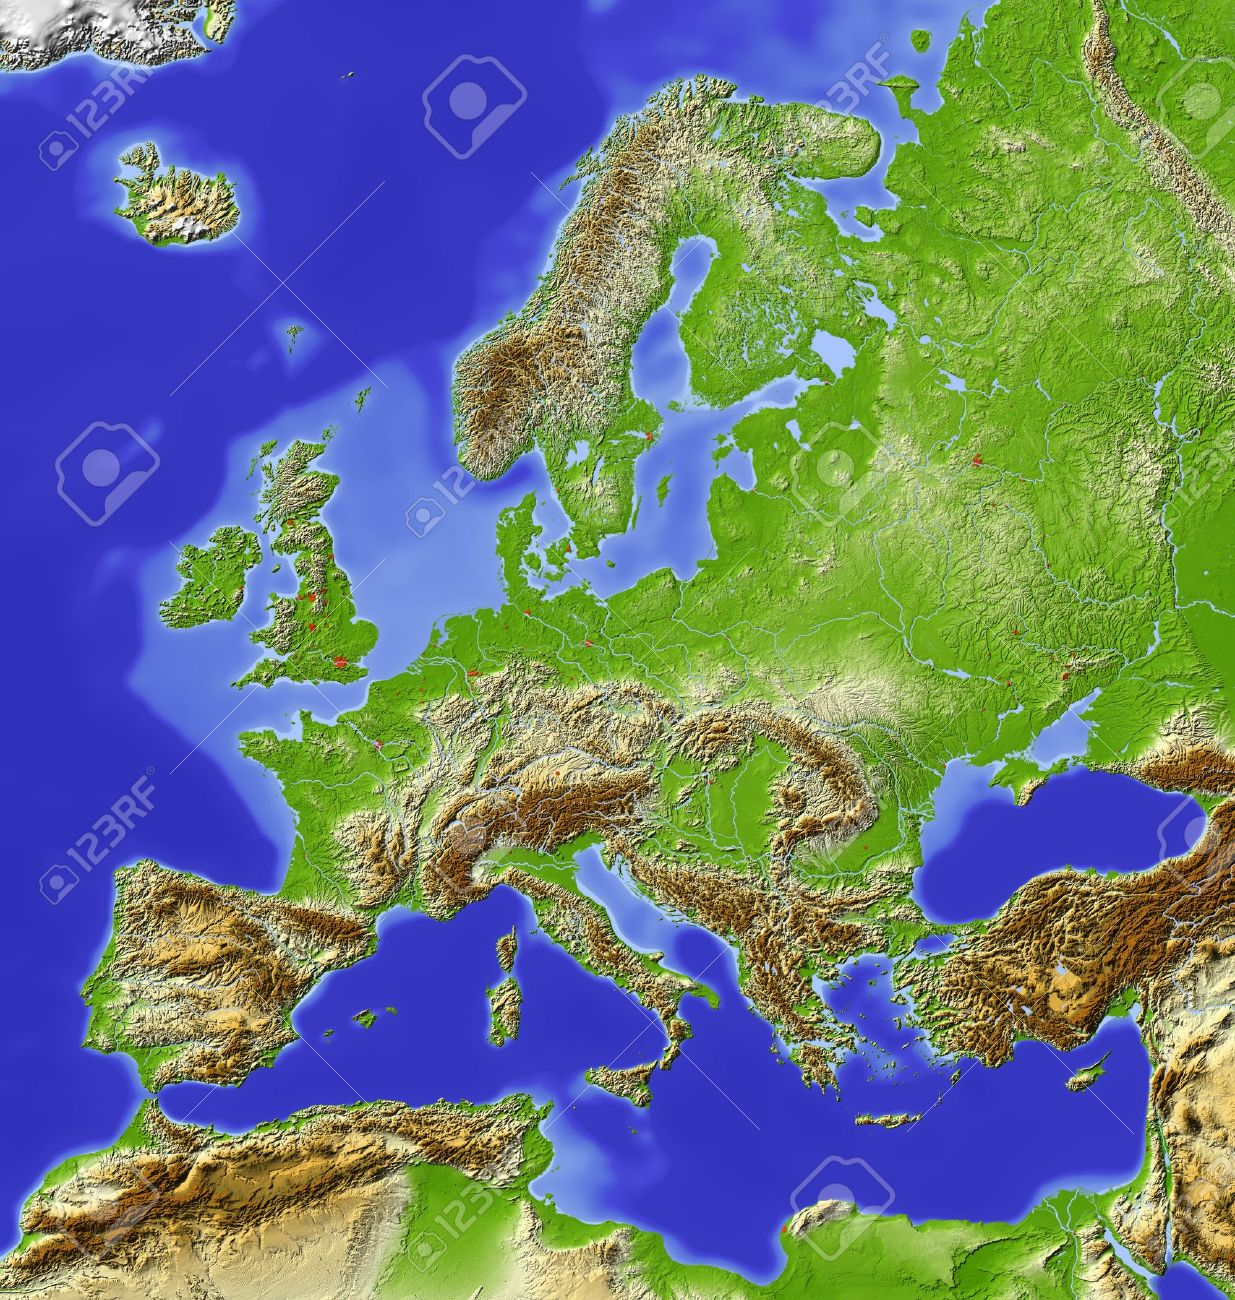 Europe. Shaded Relief Map With Major Urban Areas. Colored